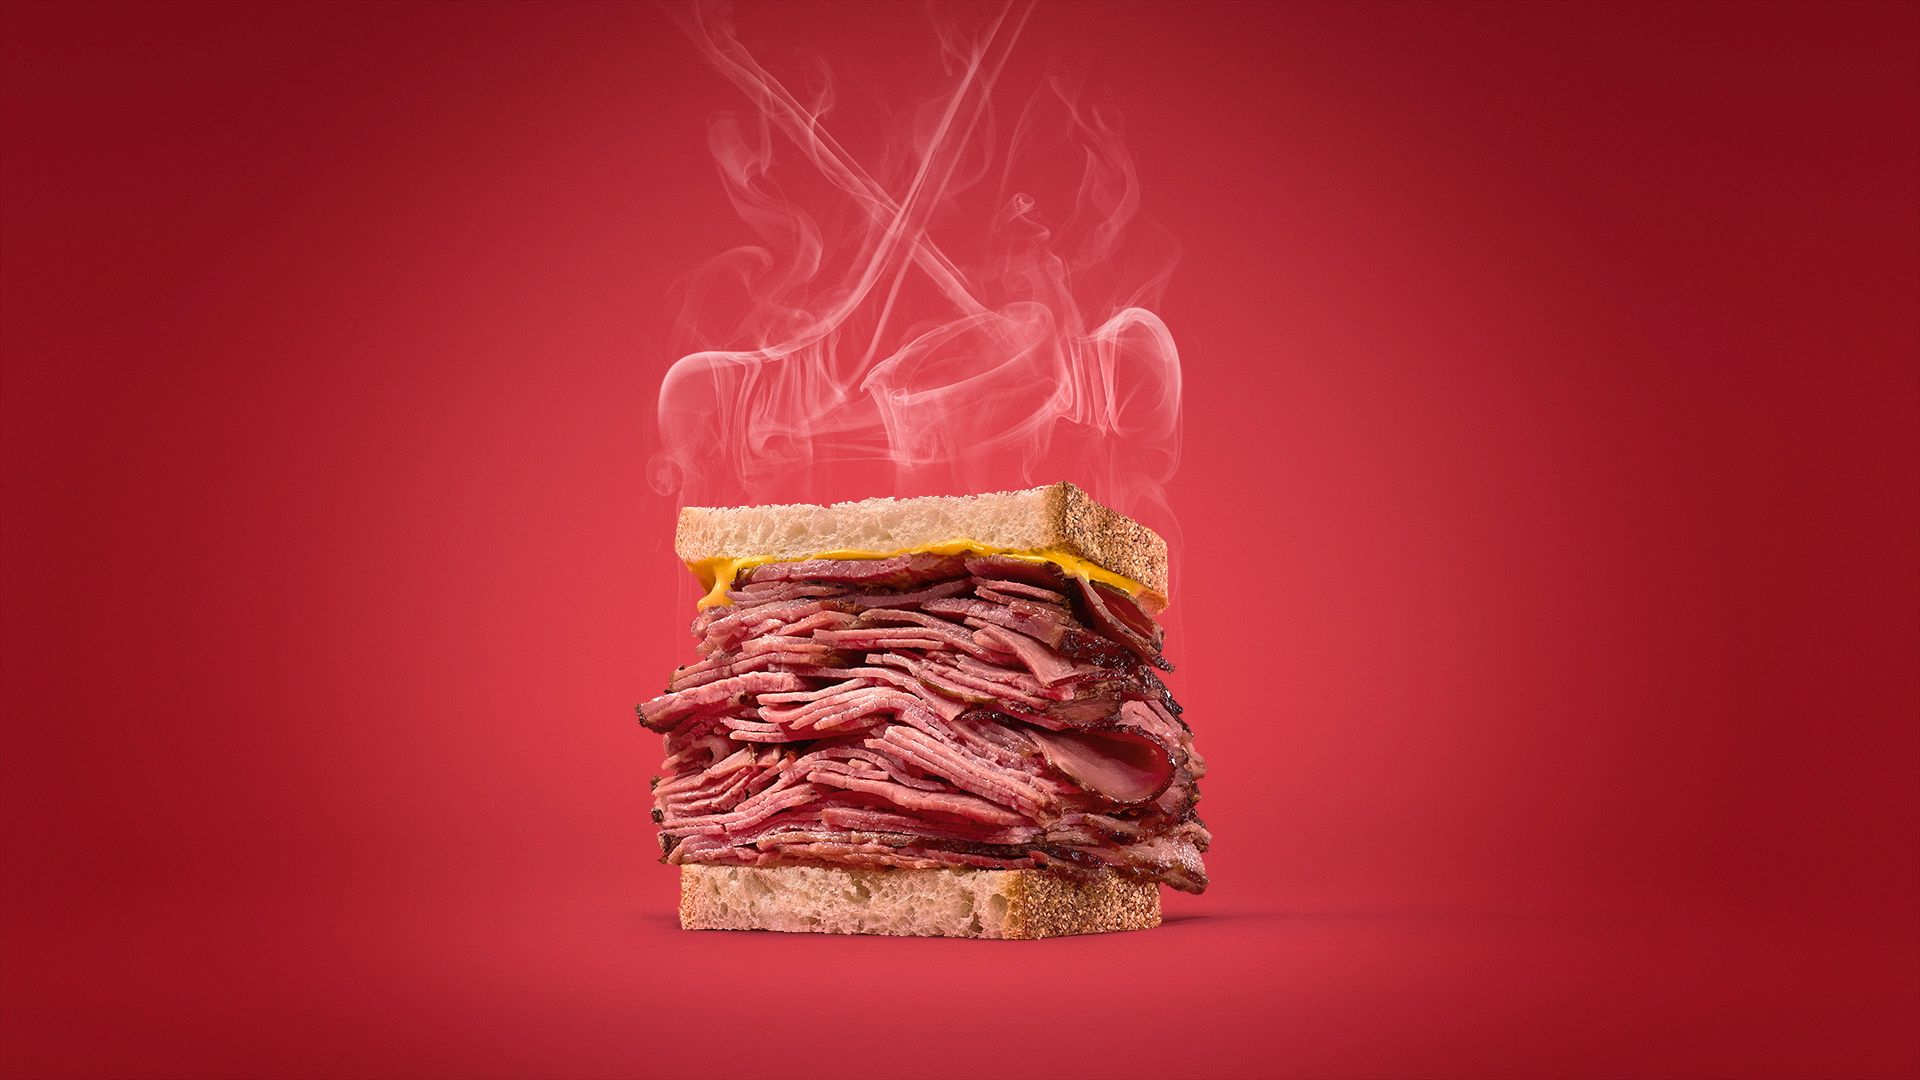 huge sandwich of smoked meat with steam in the form of hockey sticks coming out of it by Mathieu Levesque